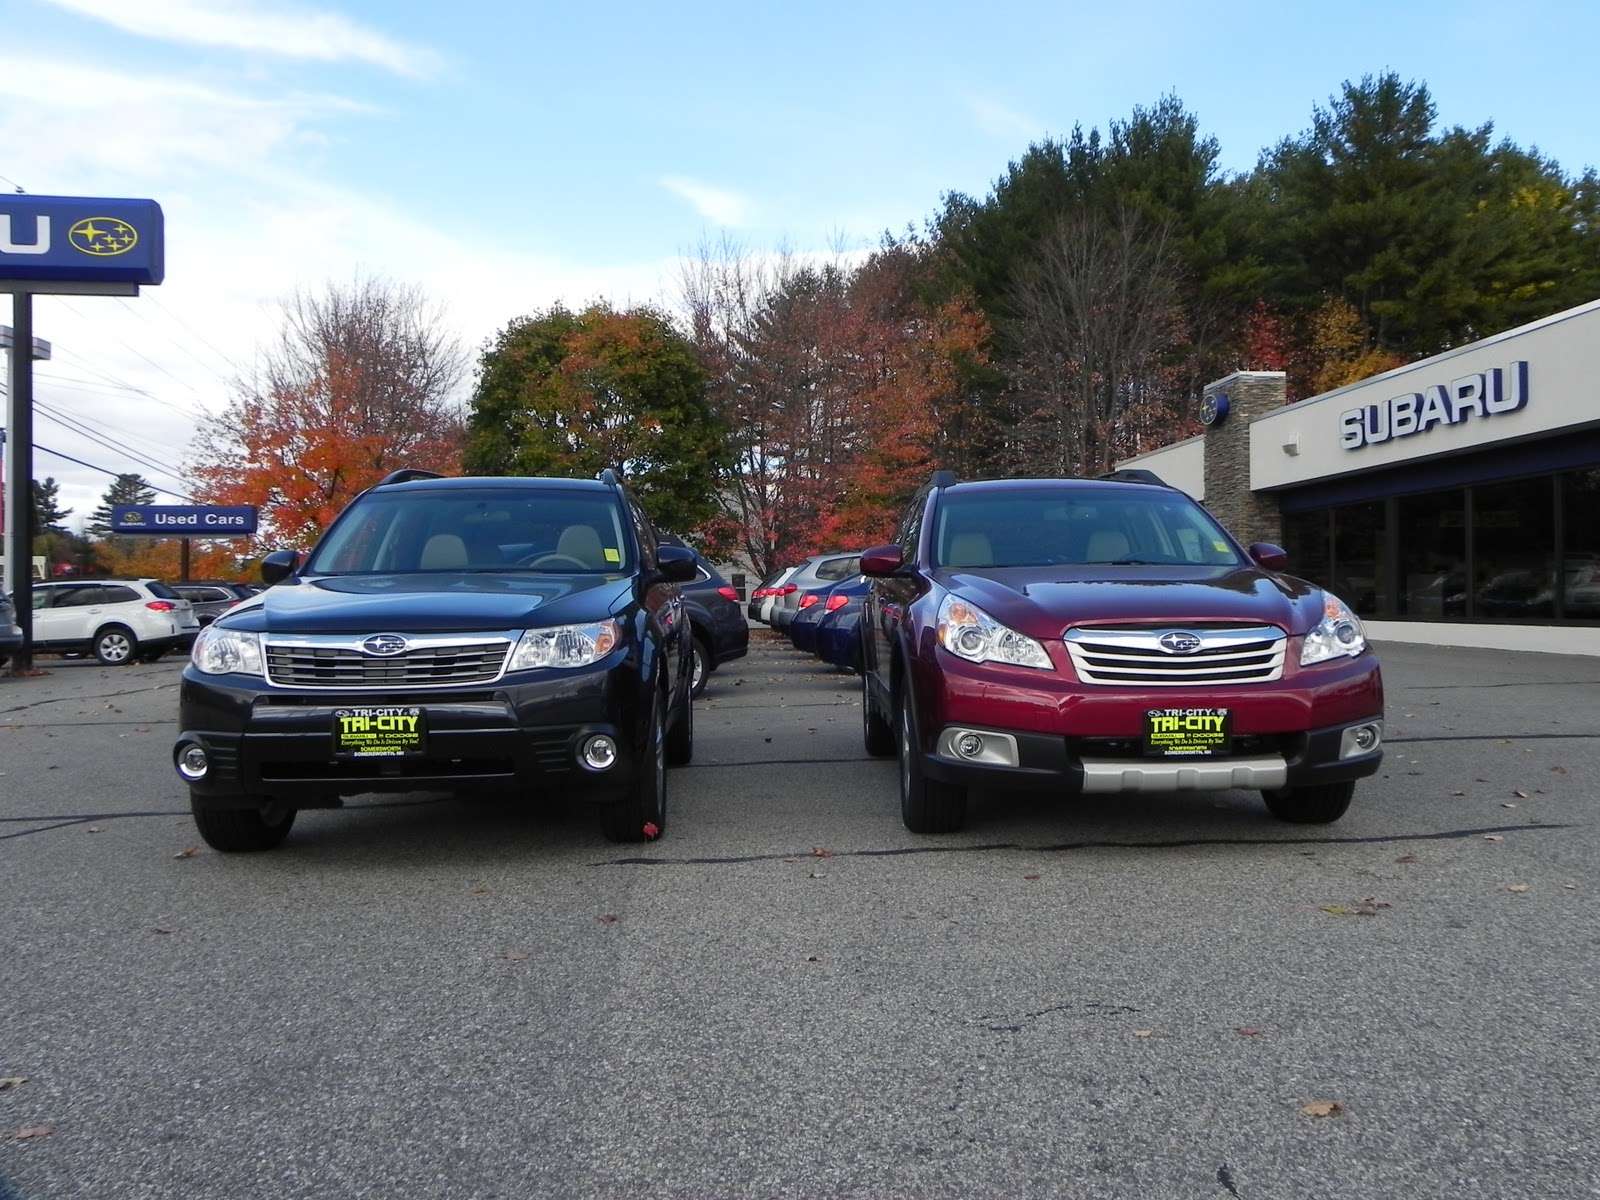 Tri City Subaru 2011 Outback vs 2011 Forester side by side